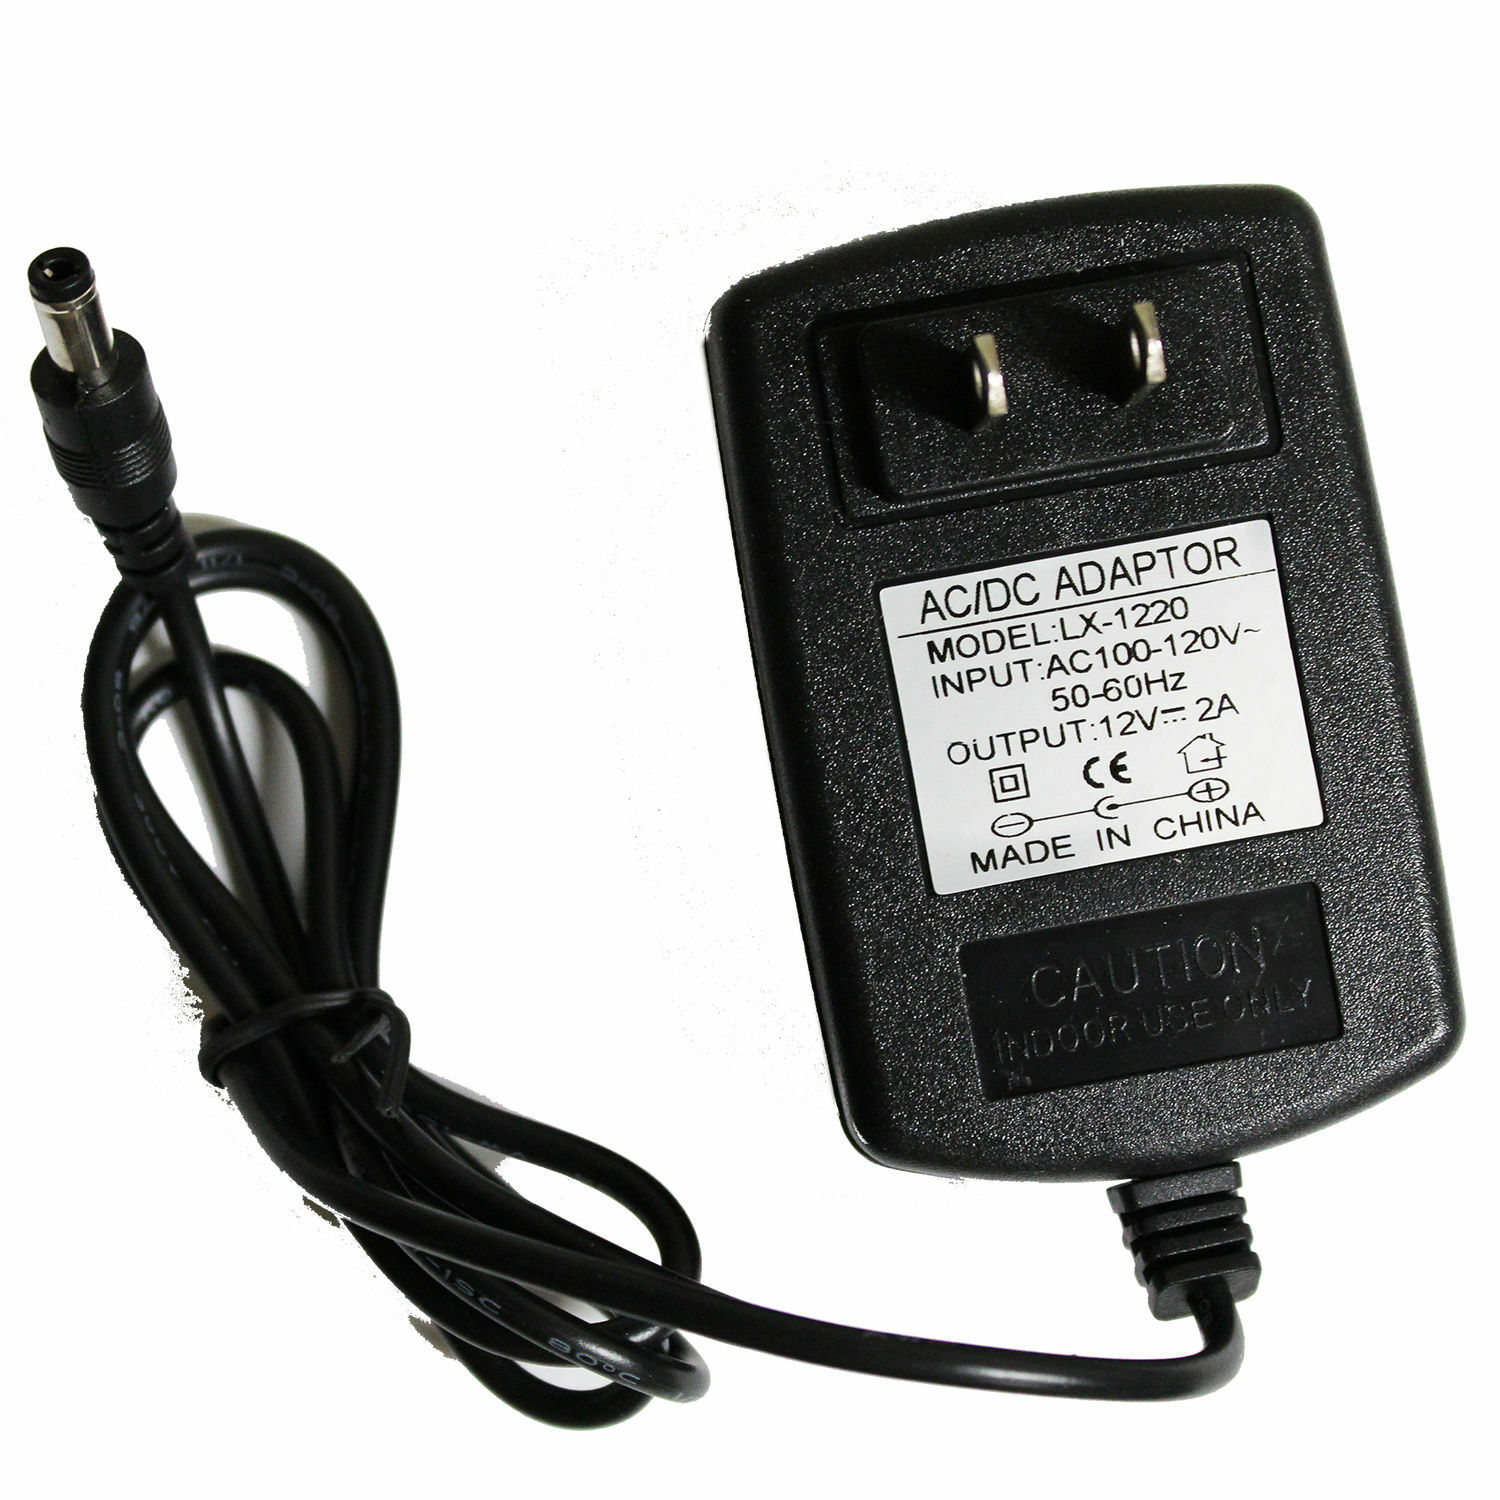 dc 12v 2a ac adapter power supply transformer for 5050 5630 3528 led strip 24w ebay. Black Bedroom Furniture Sets. Home Design Ideas